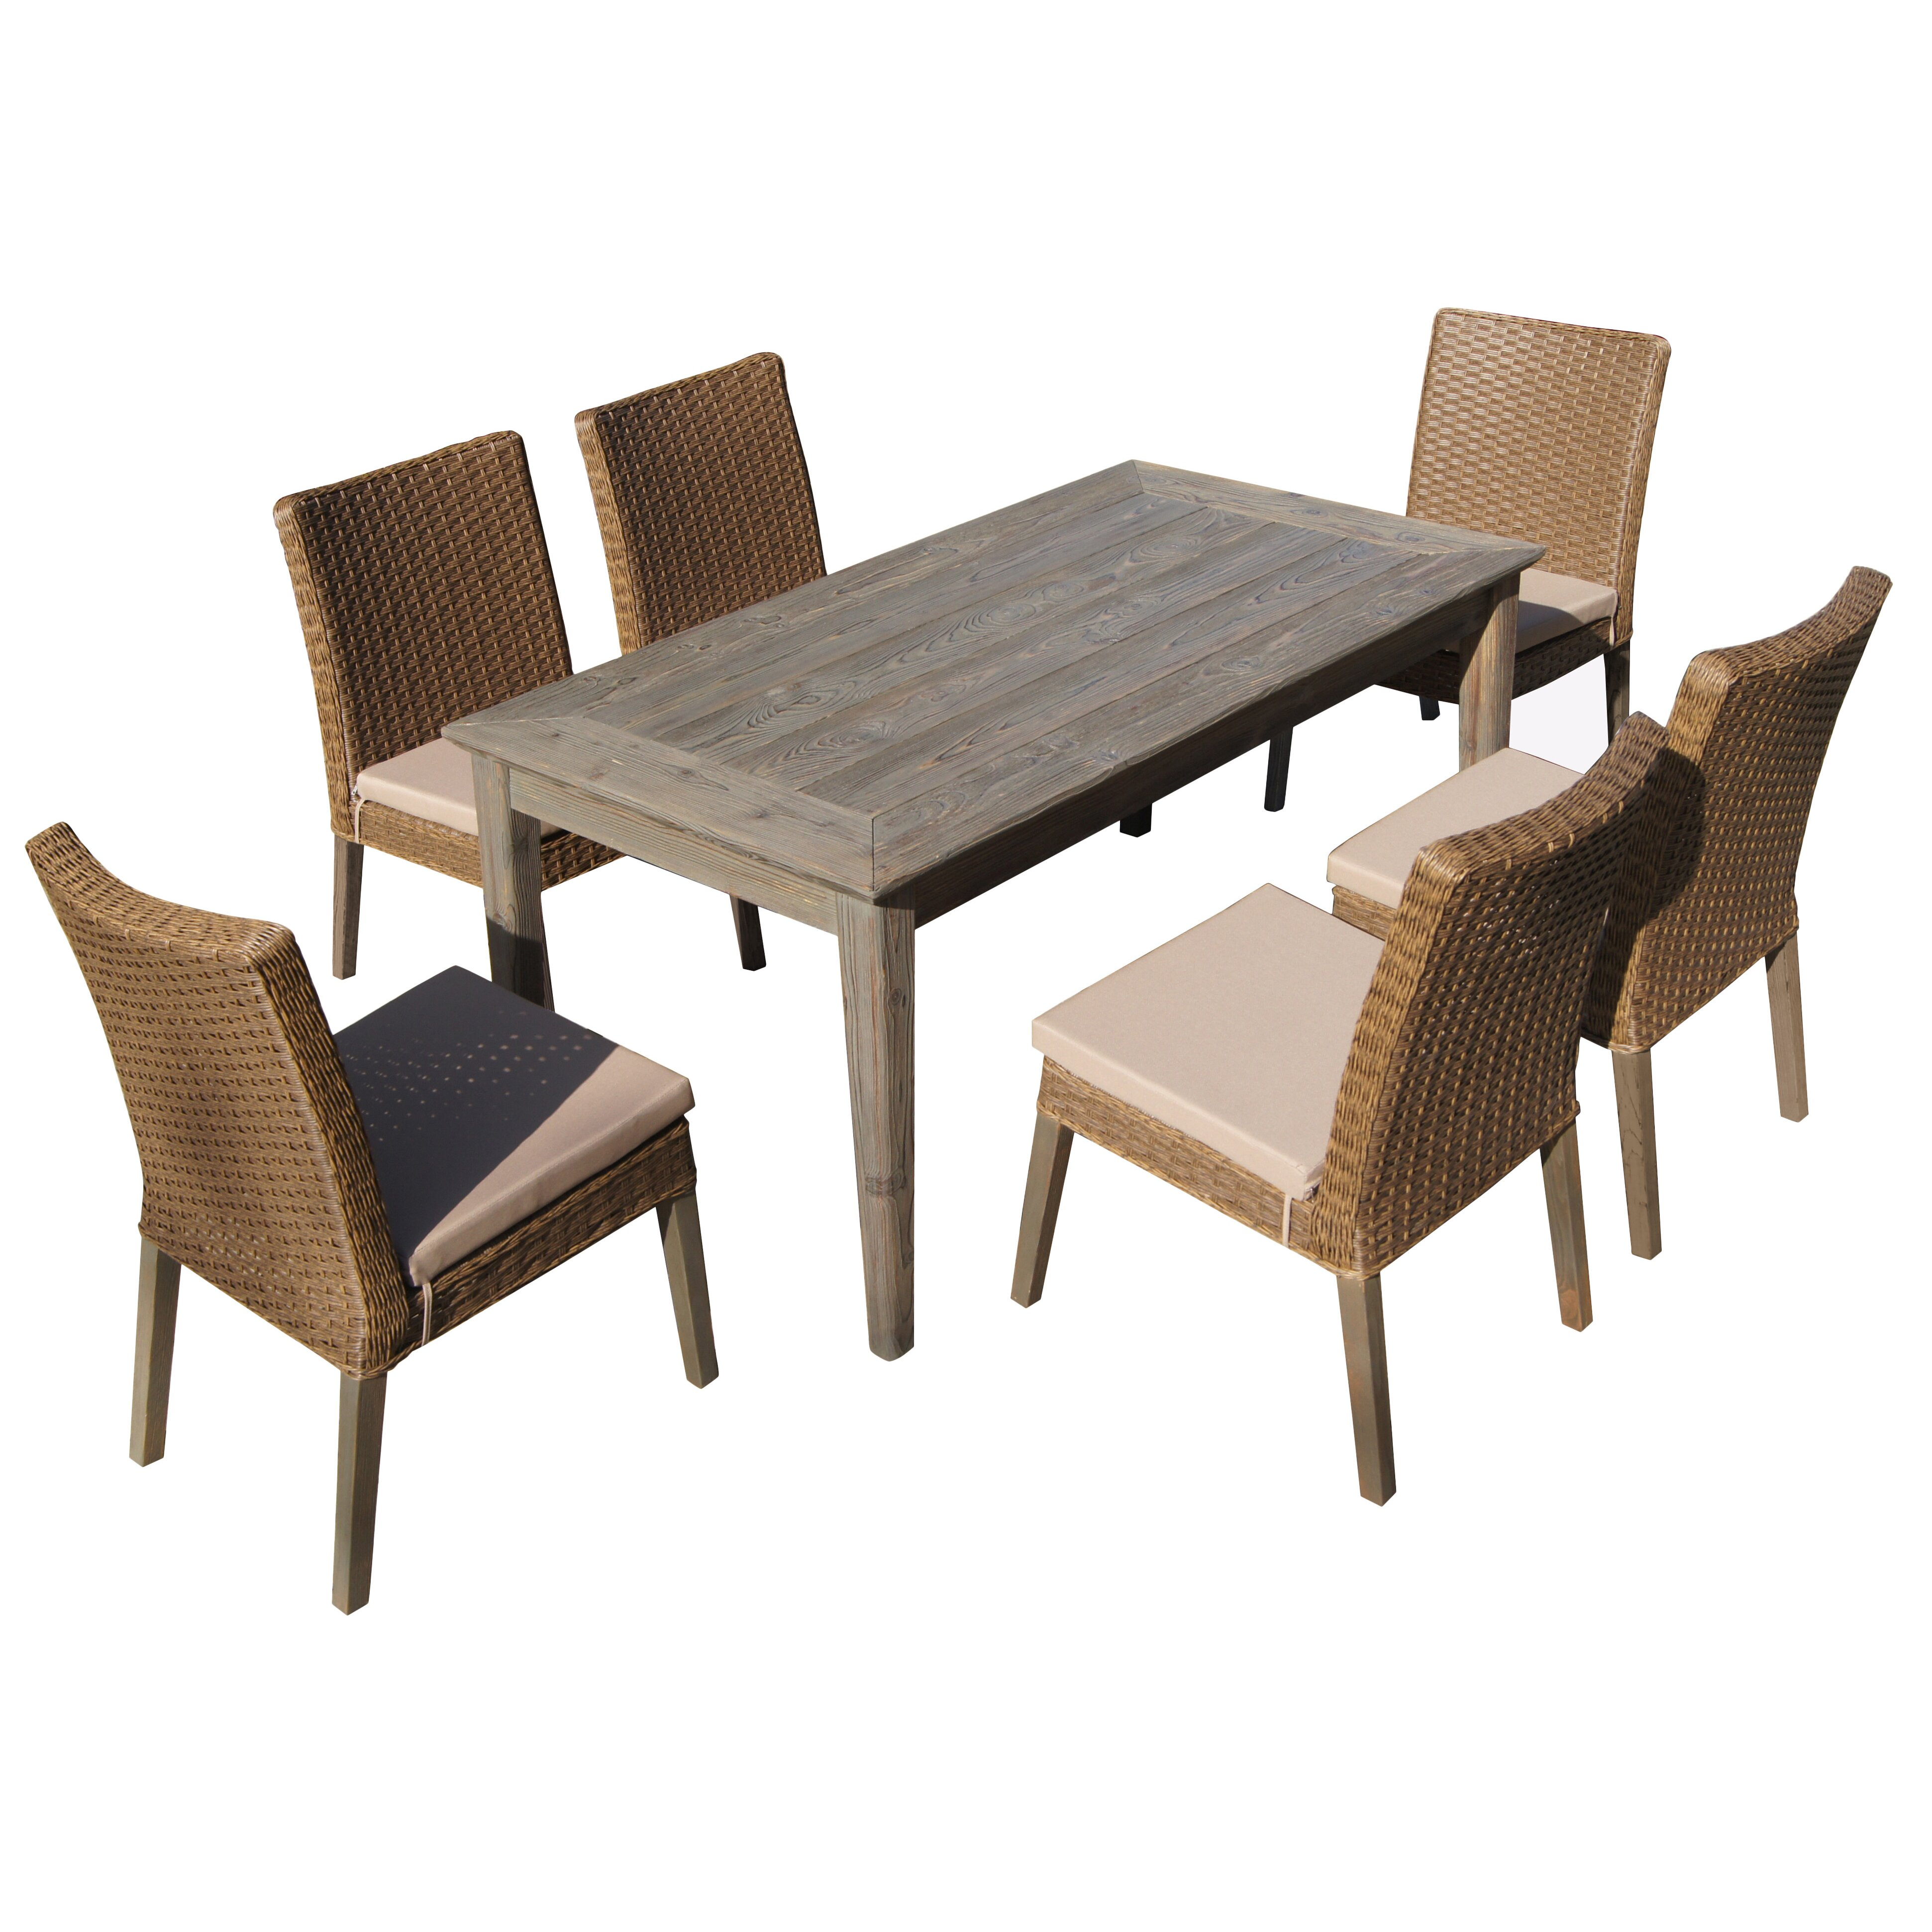 Thy hom winchester 7 piece dining set with cushion for Hom patio furniture